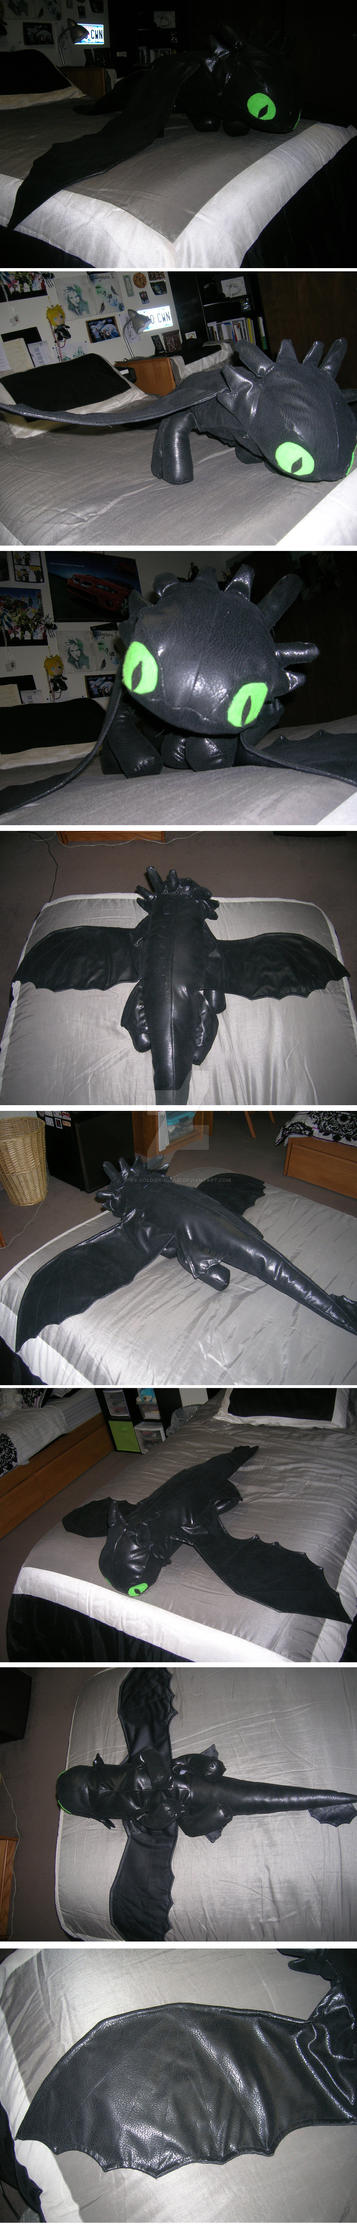 Toothless  - Night Fury Plush by Ex-Soldier-Cloud